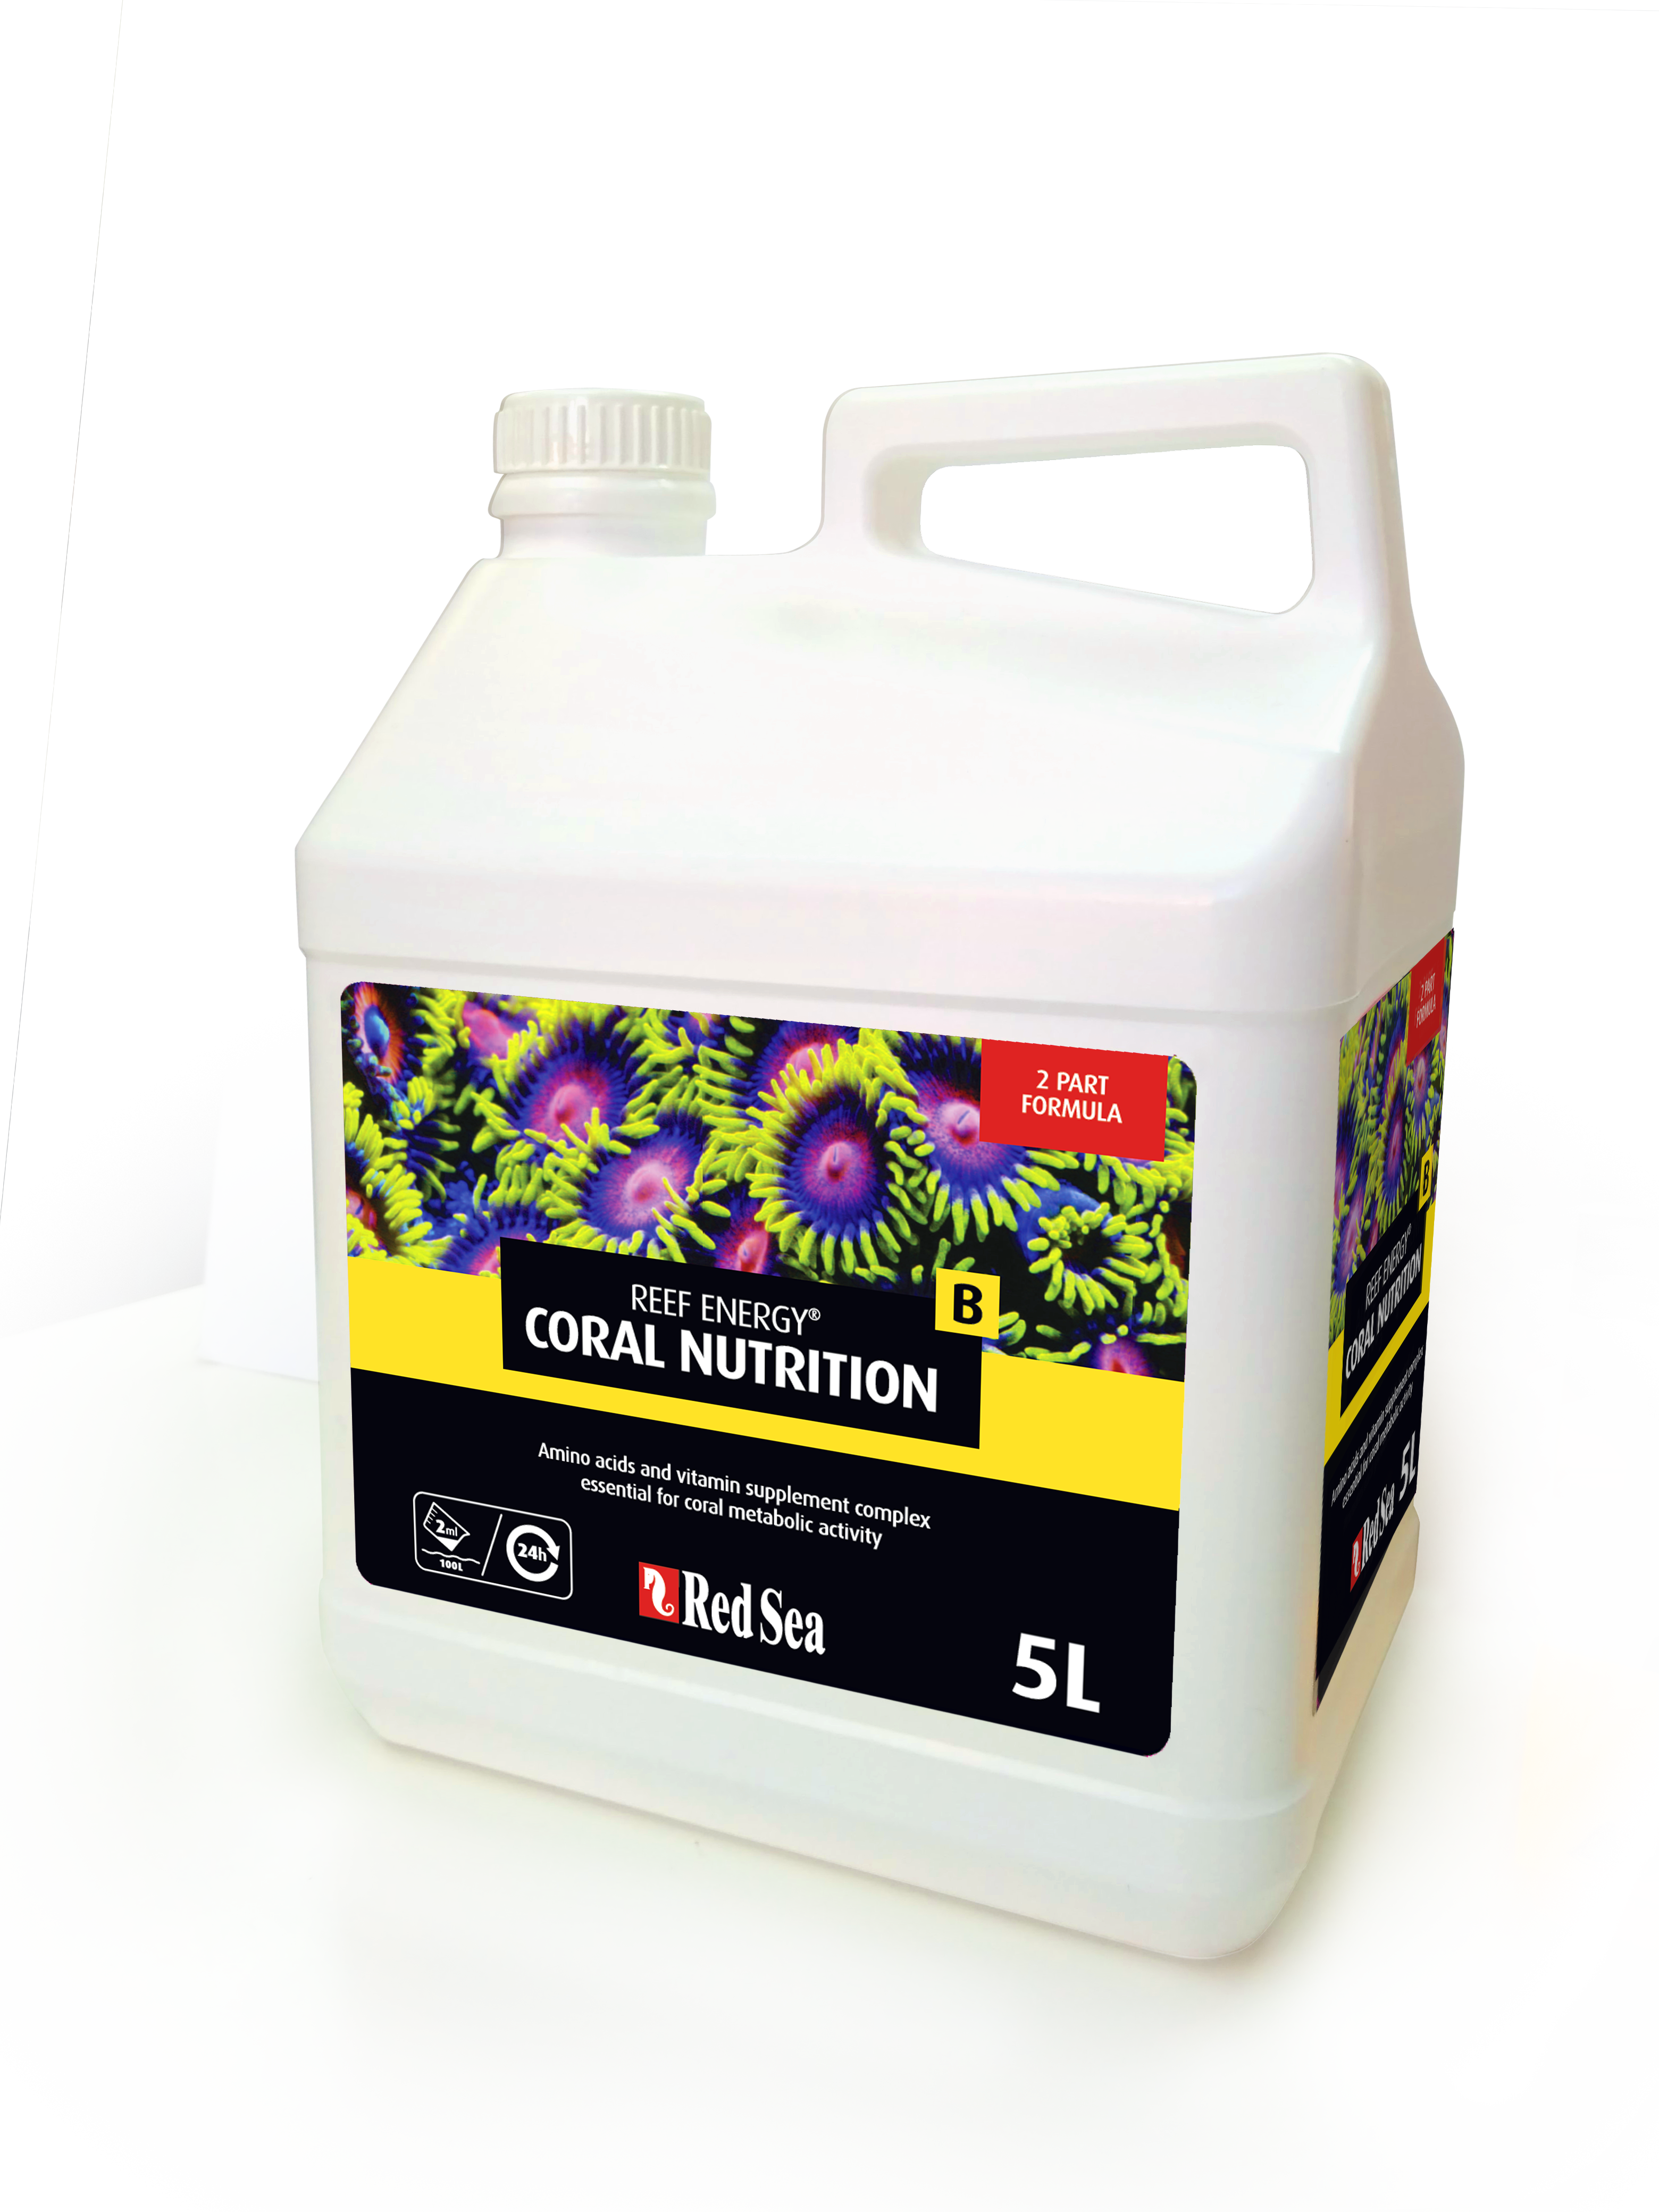 Reef Energy  Coral Nutrition B (Aminovit) - 5 Litre